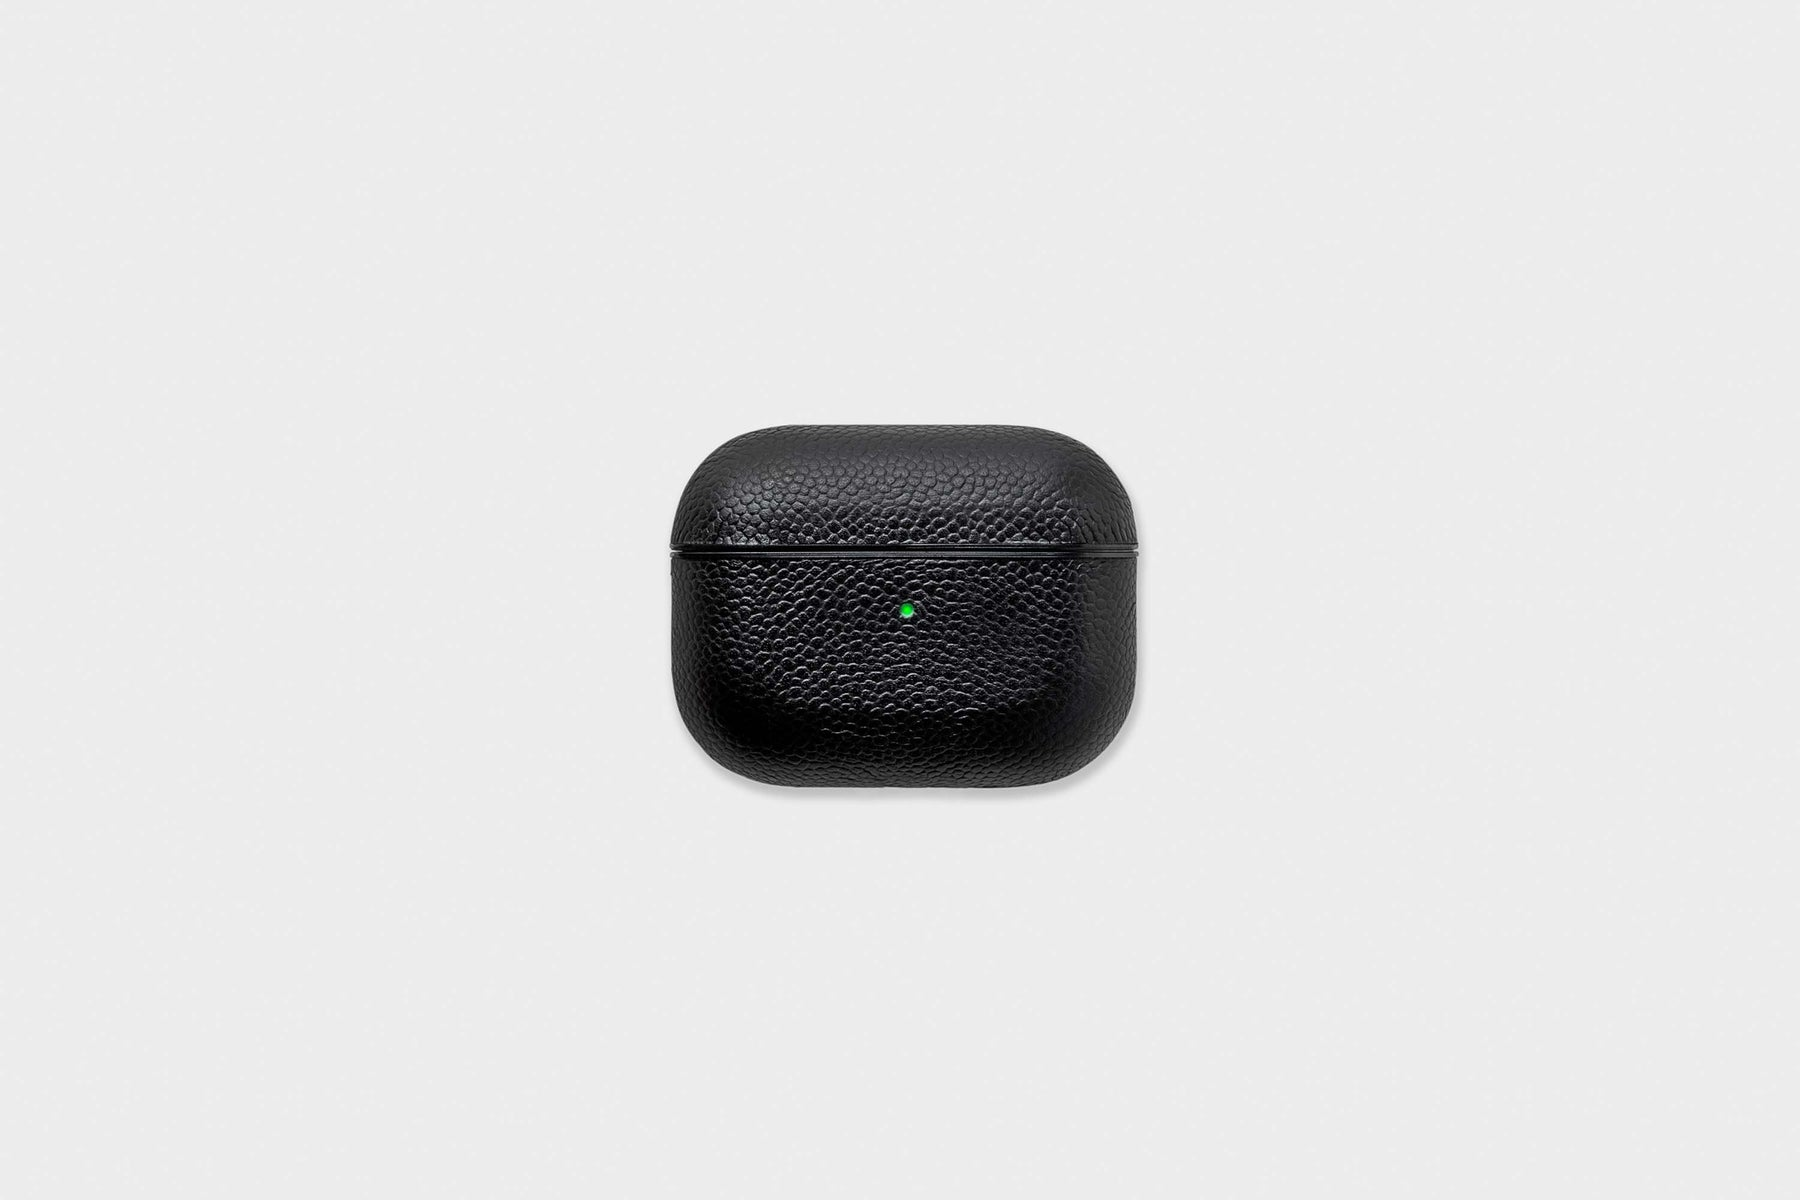 Courant Personalized AirPods Pro Leather Case